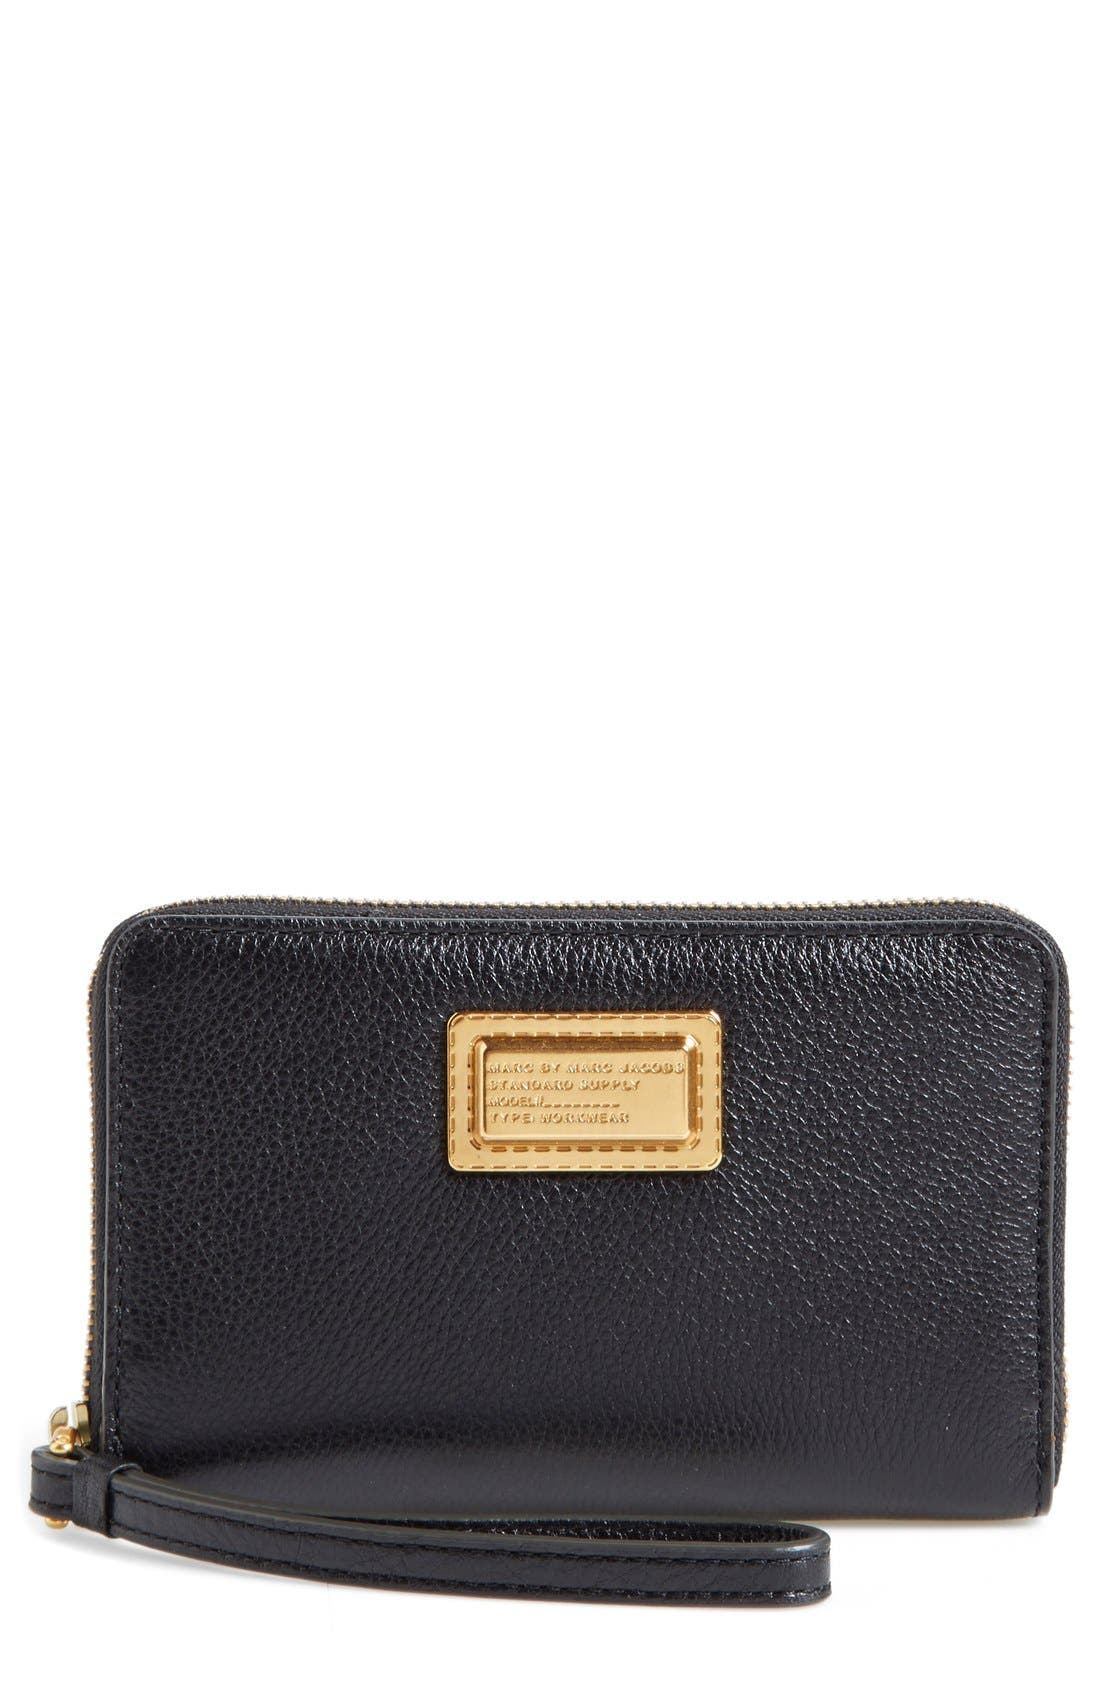 MARC BY MARC JACOBS 'Take Your Marc - Wingman' Smartphone Wristlet,                             Main thumbnail 1, color,                             001